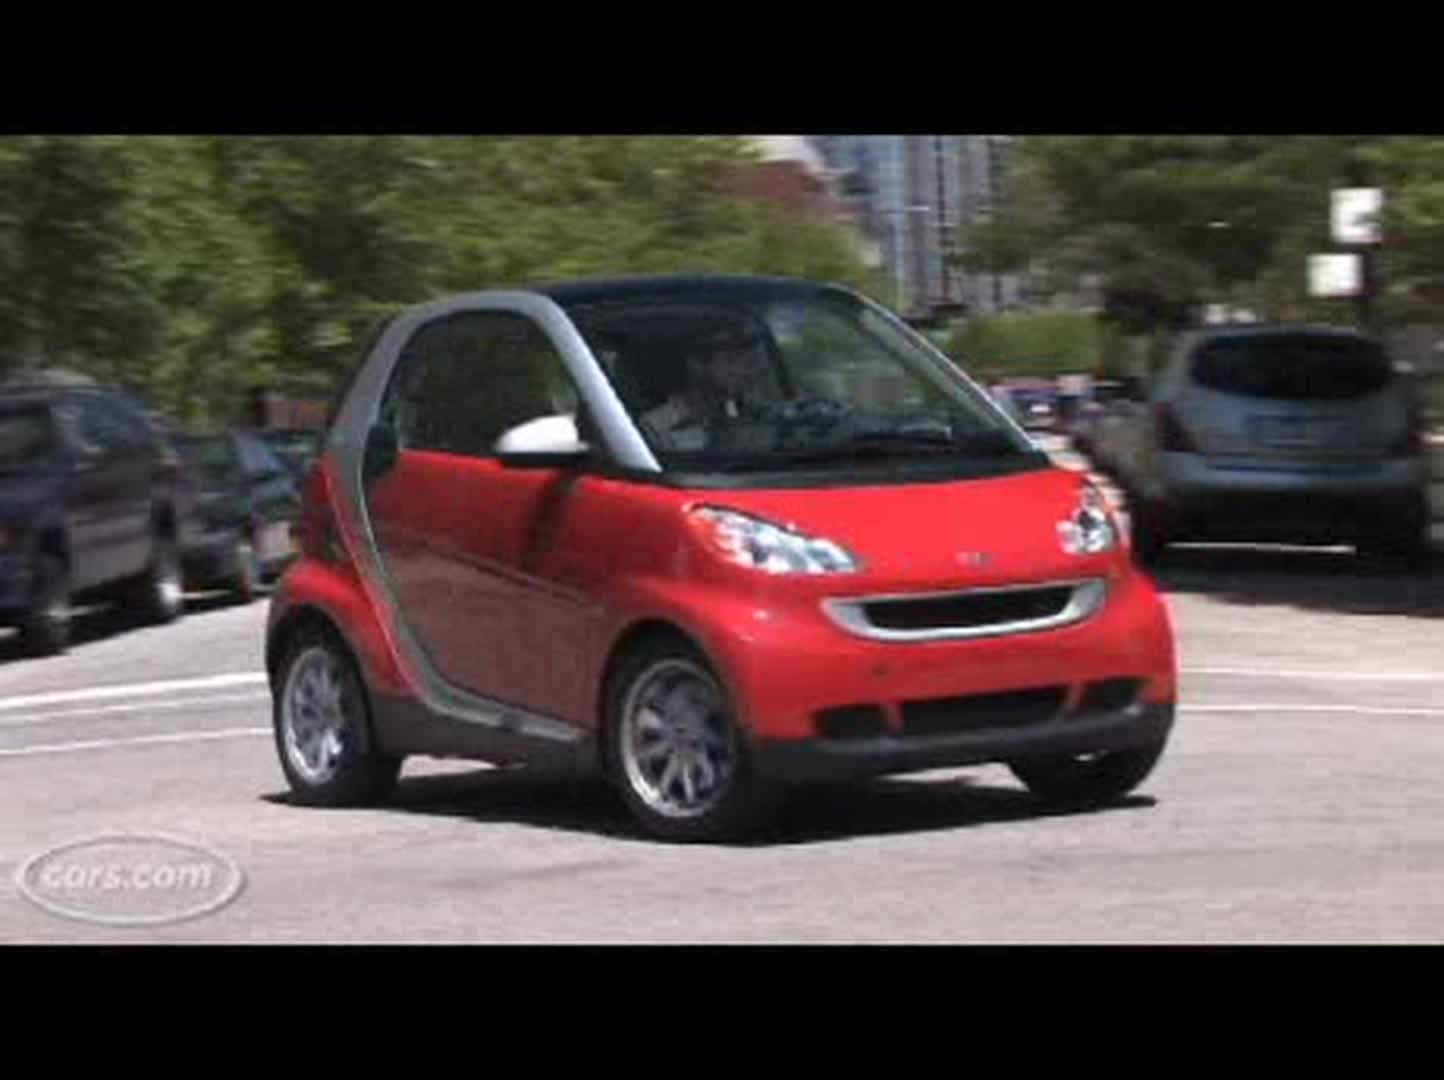 2009 smart ForTwo - For every turn, there's cars com